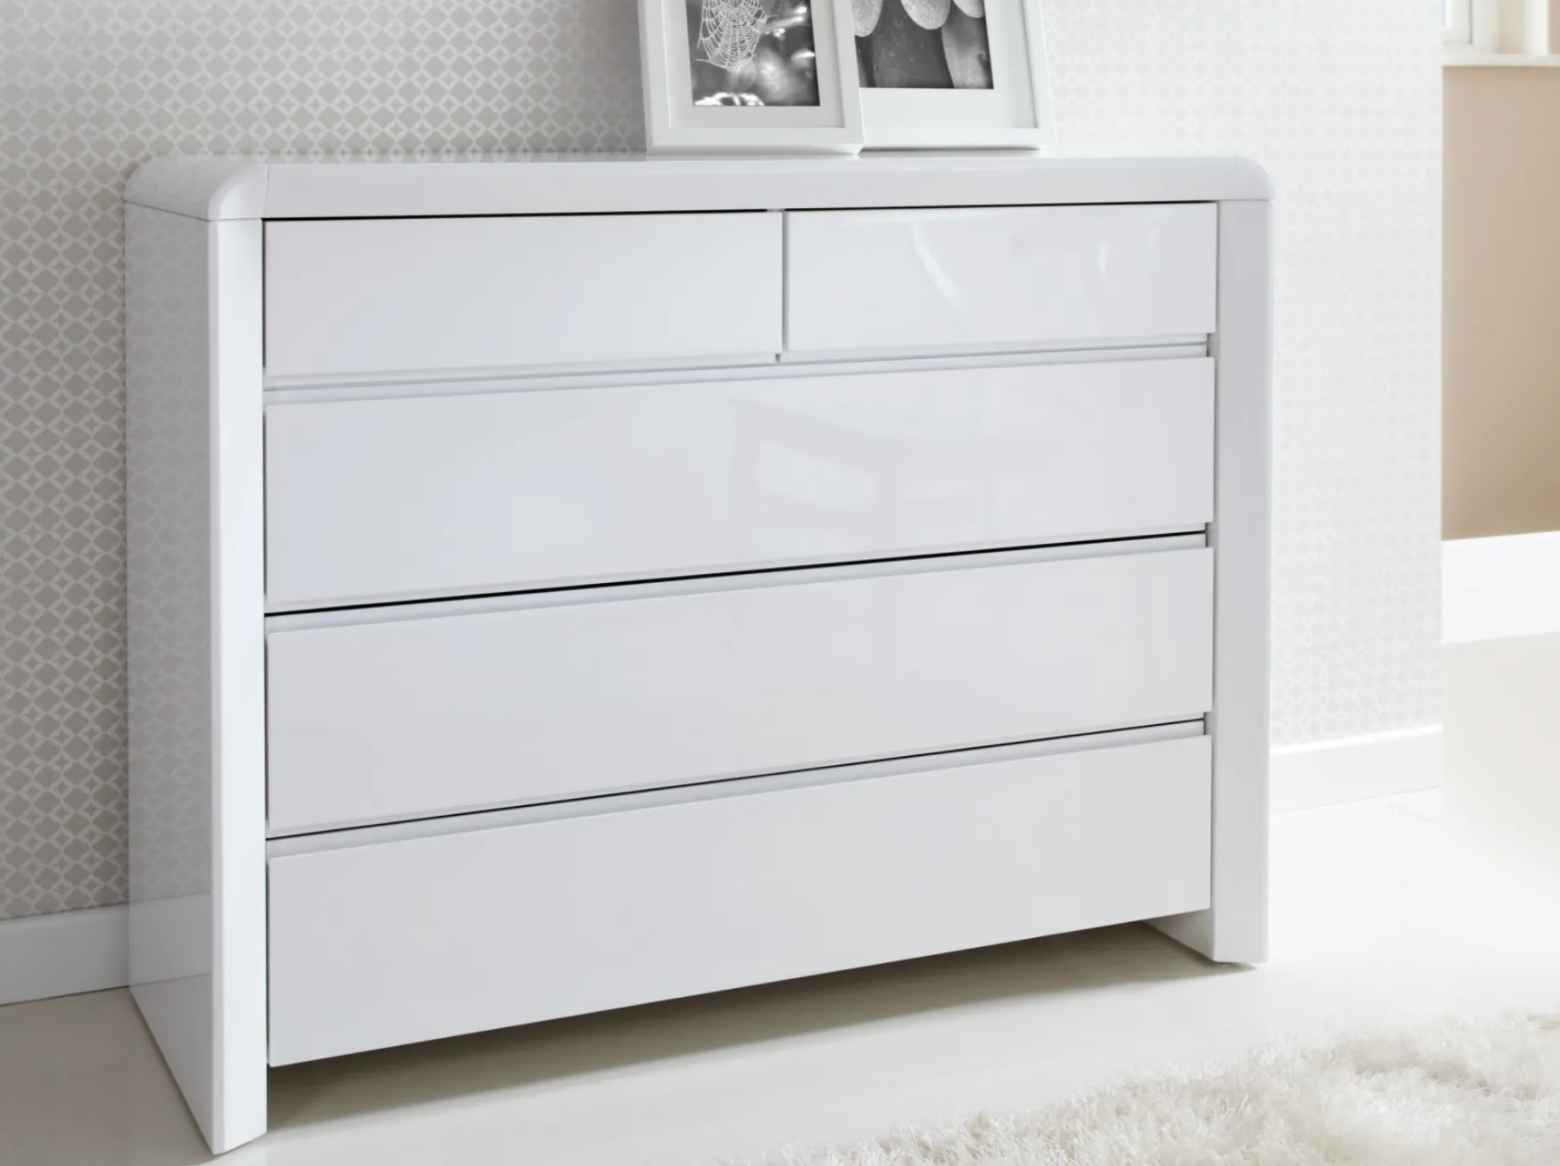 A white dresser in a room